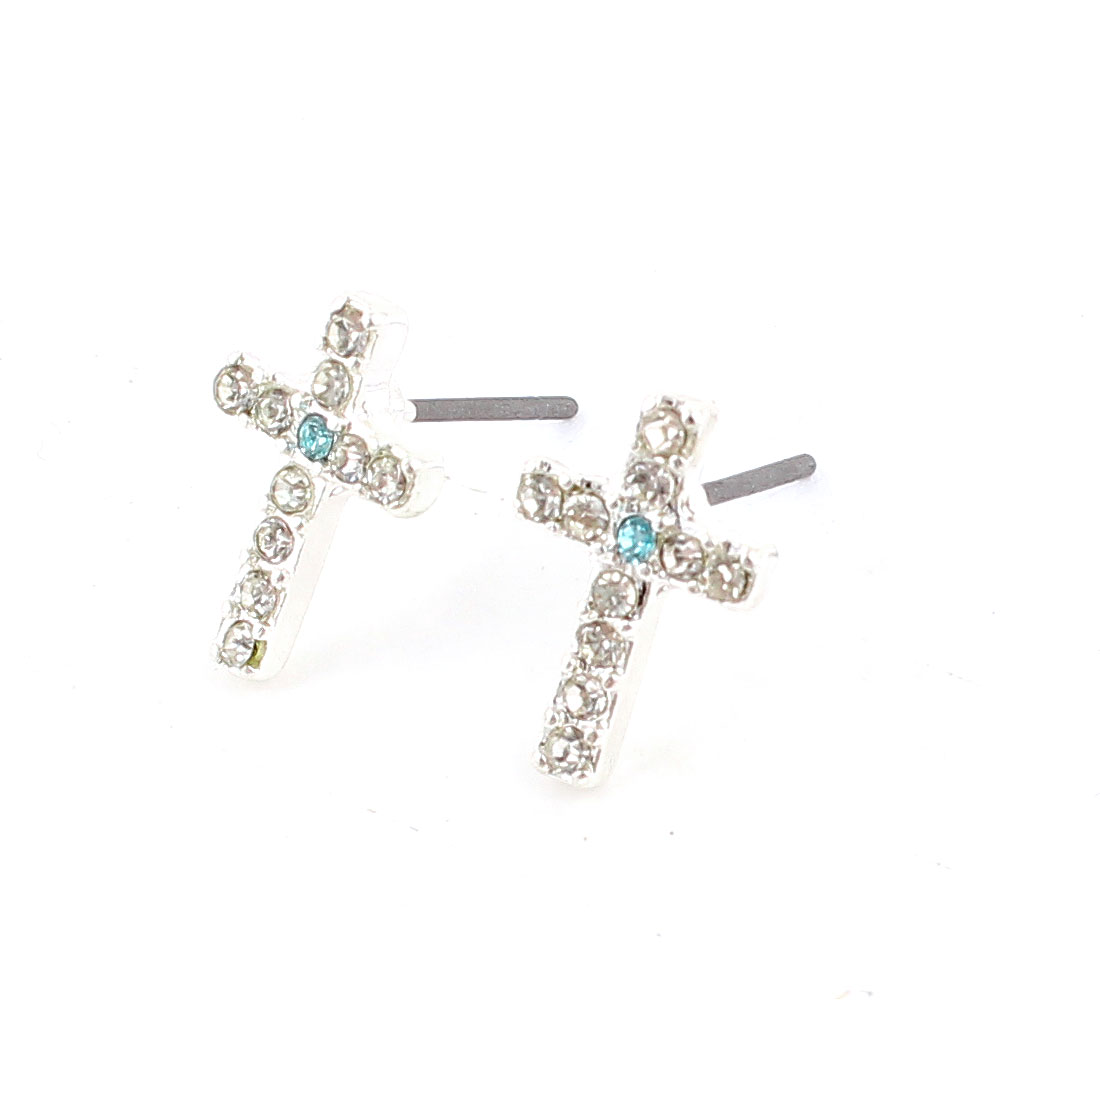 Lady Rhinestone Inlaid Blue Cross Ear Pins Earbob Stud Earrings Pair